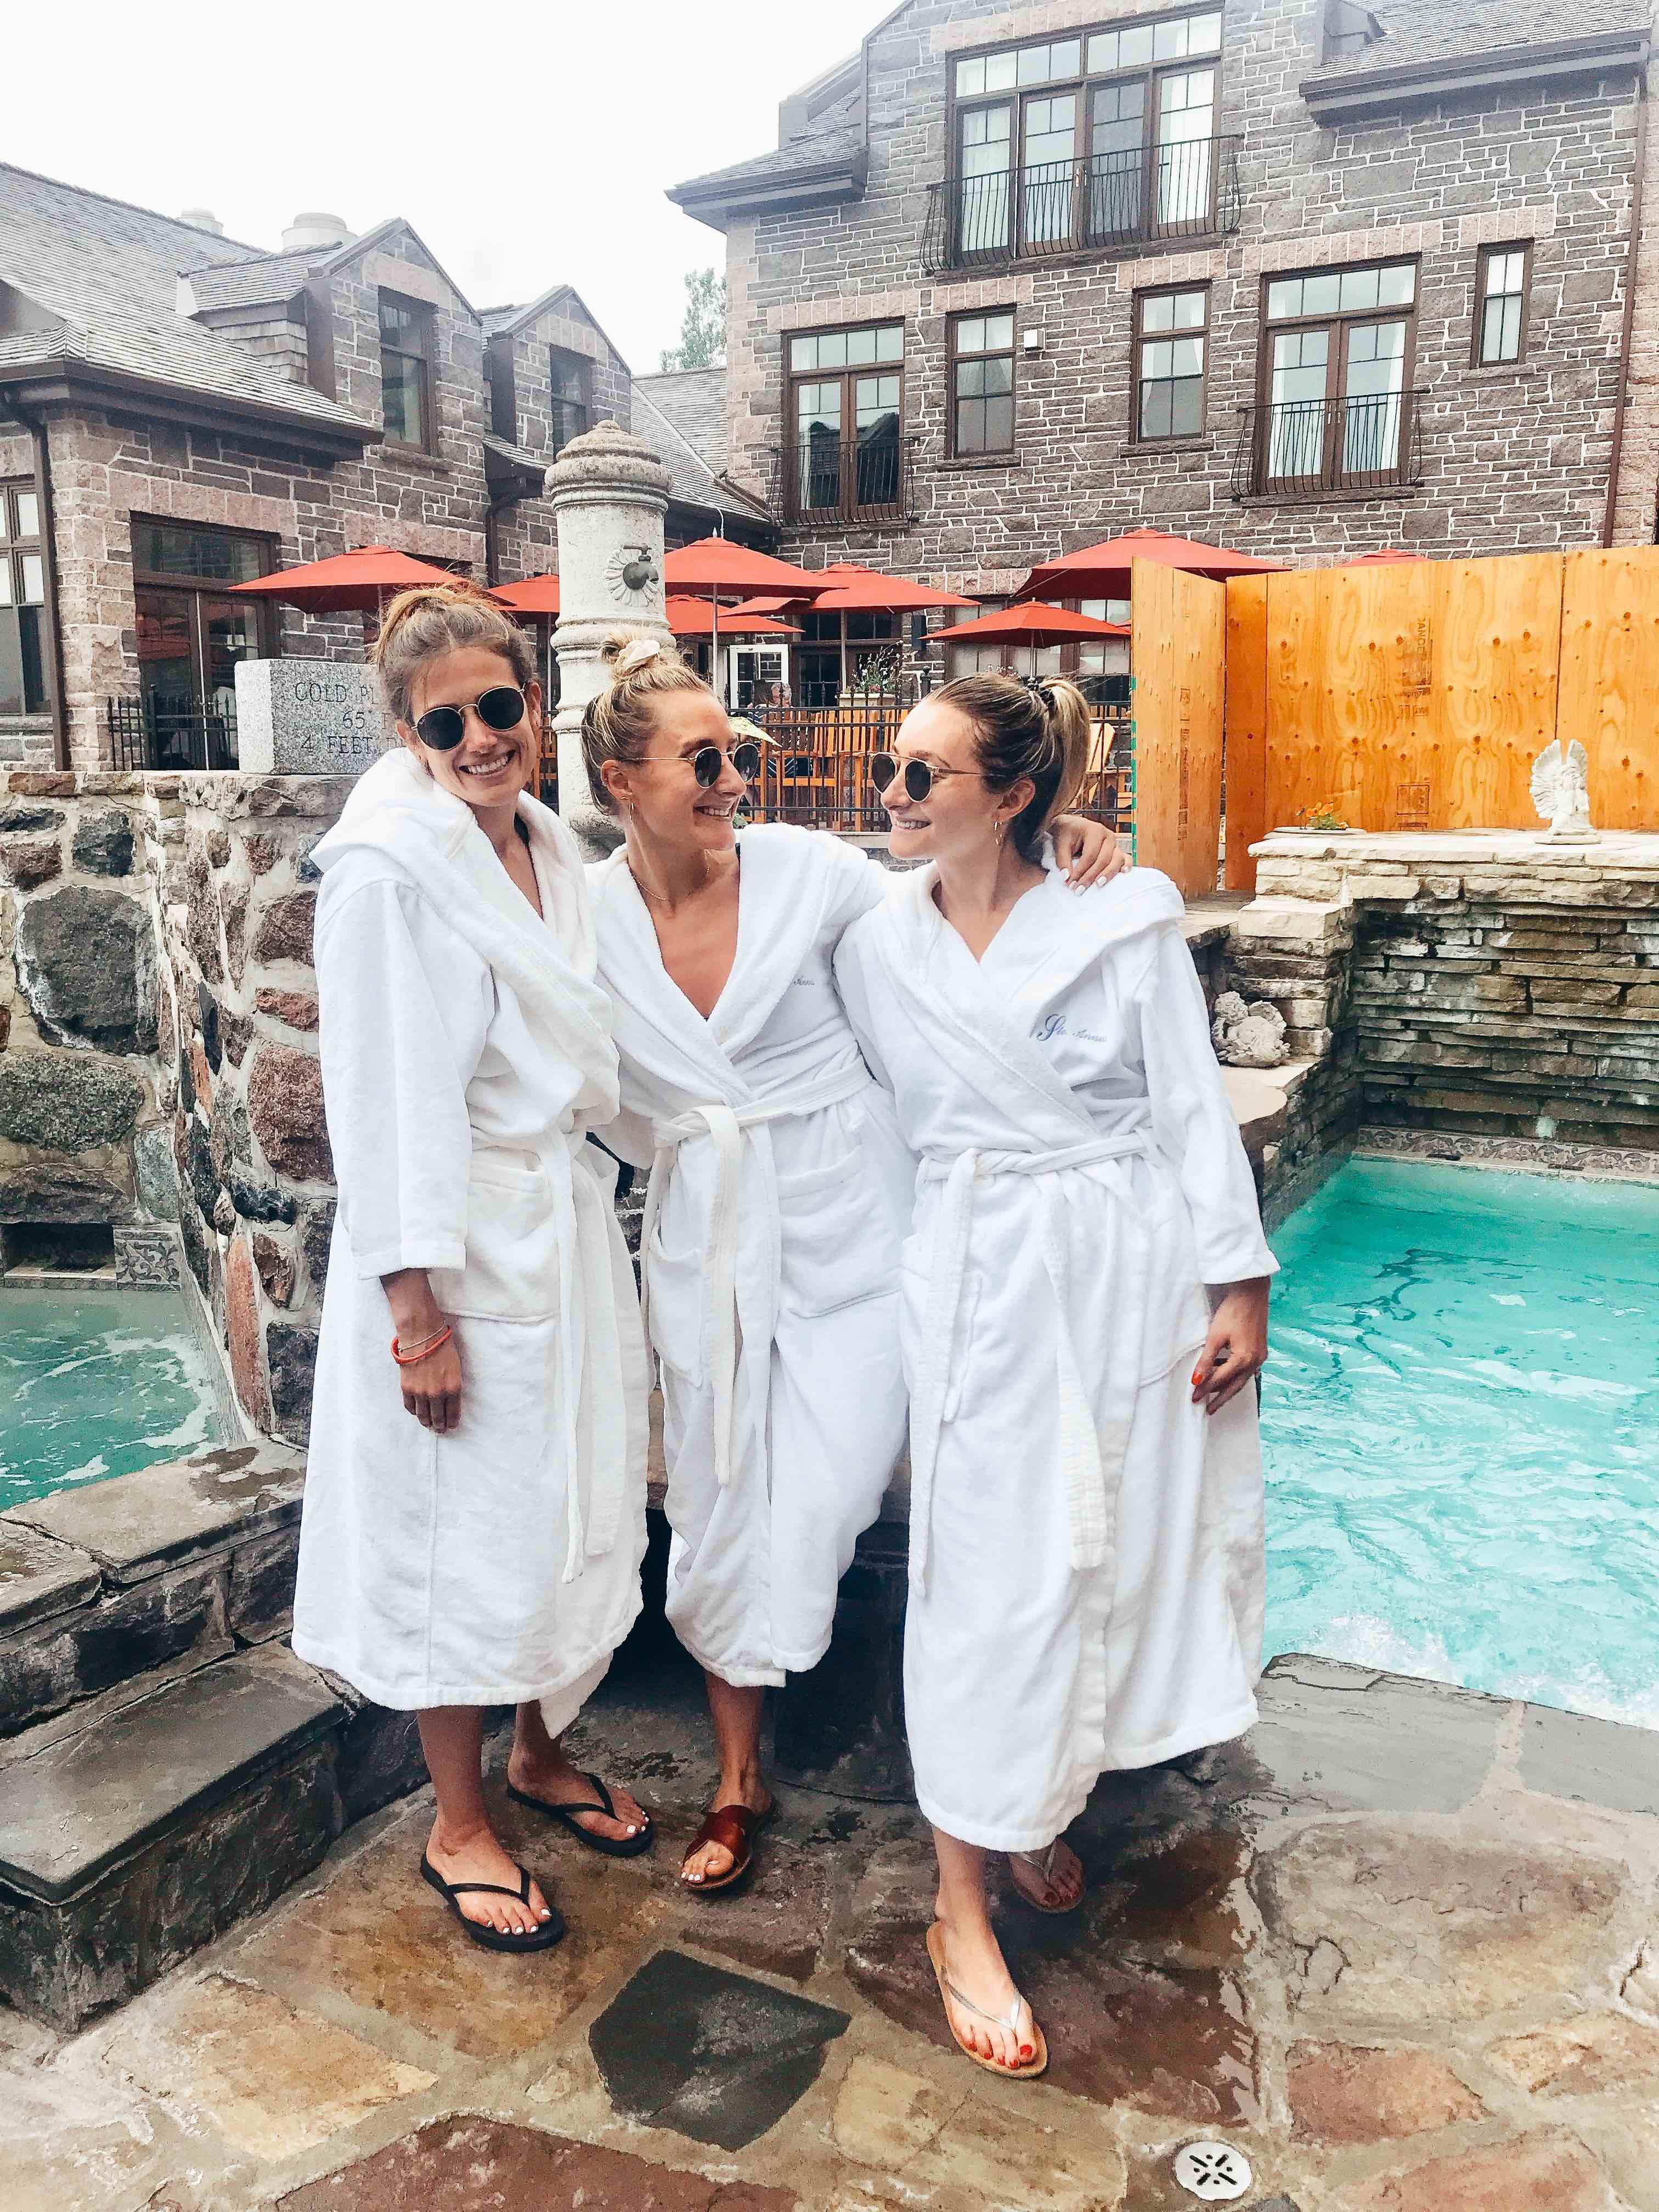 jordana hart toronto blogger and nutritionist with friends in white robes smiling at ste annes spa